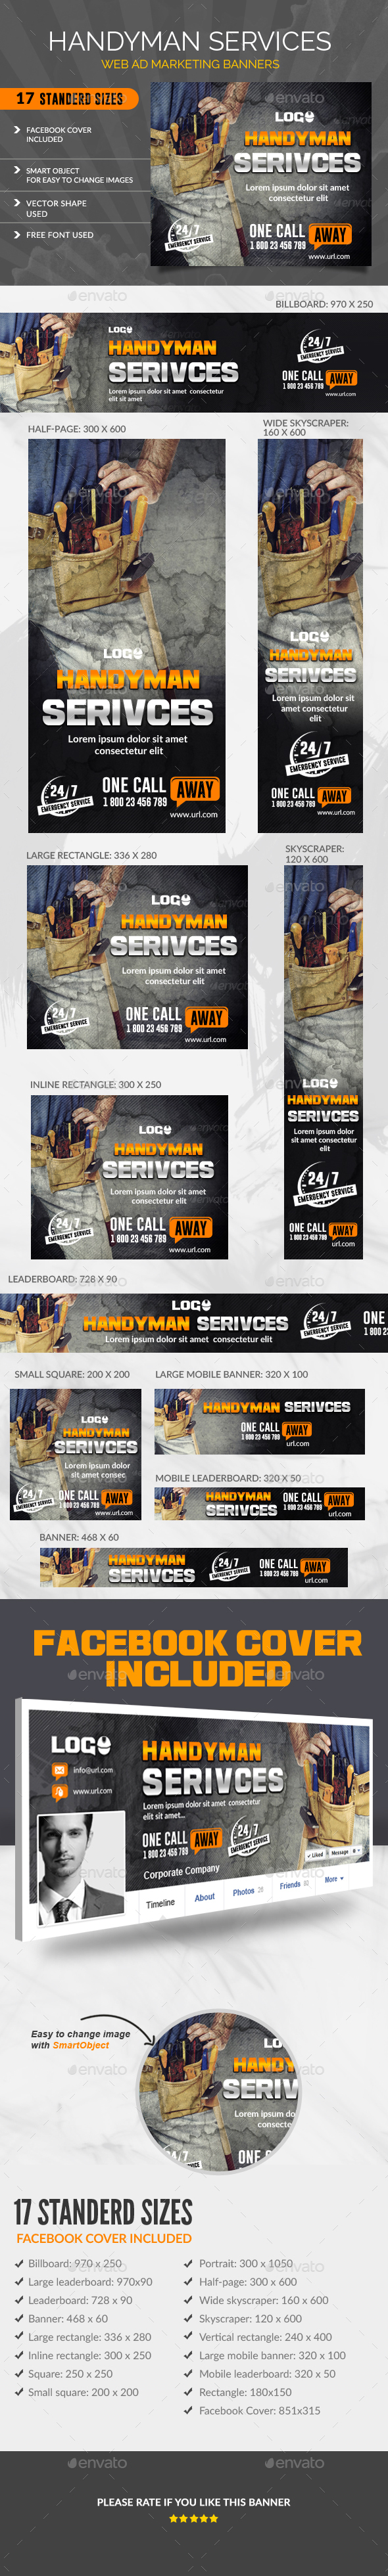 Handyman Services Banners - Banners & Ads Web Elements